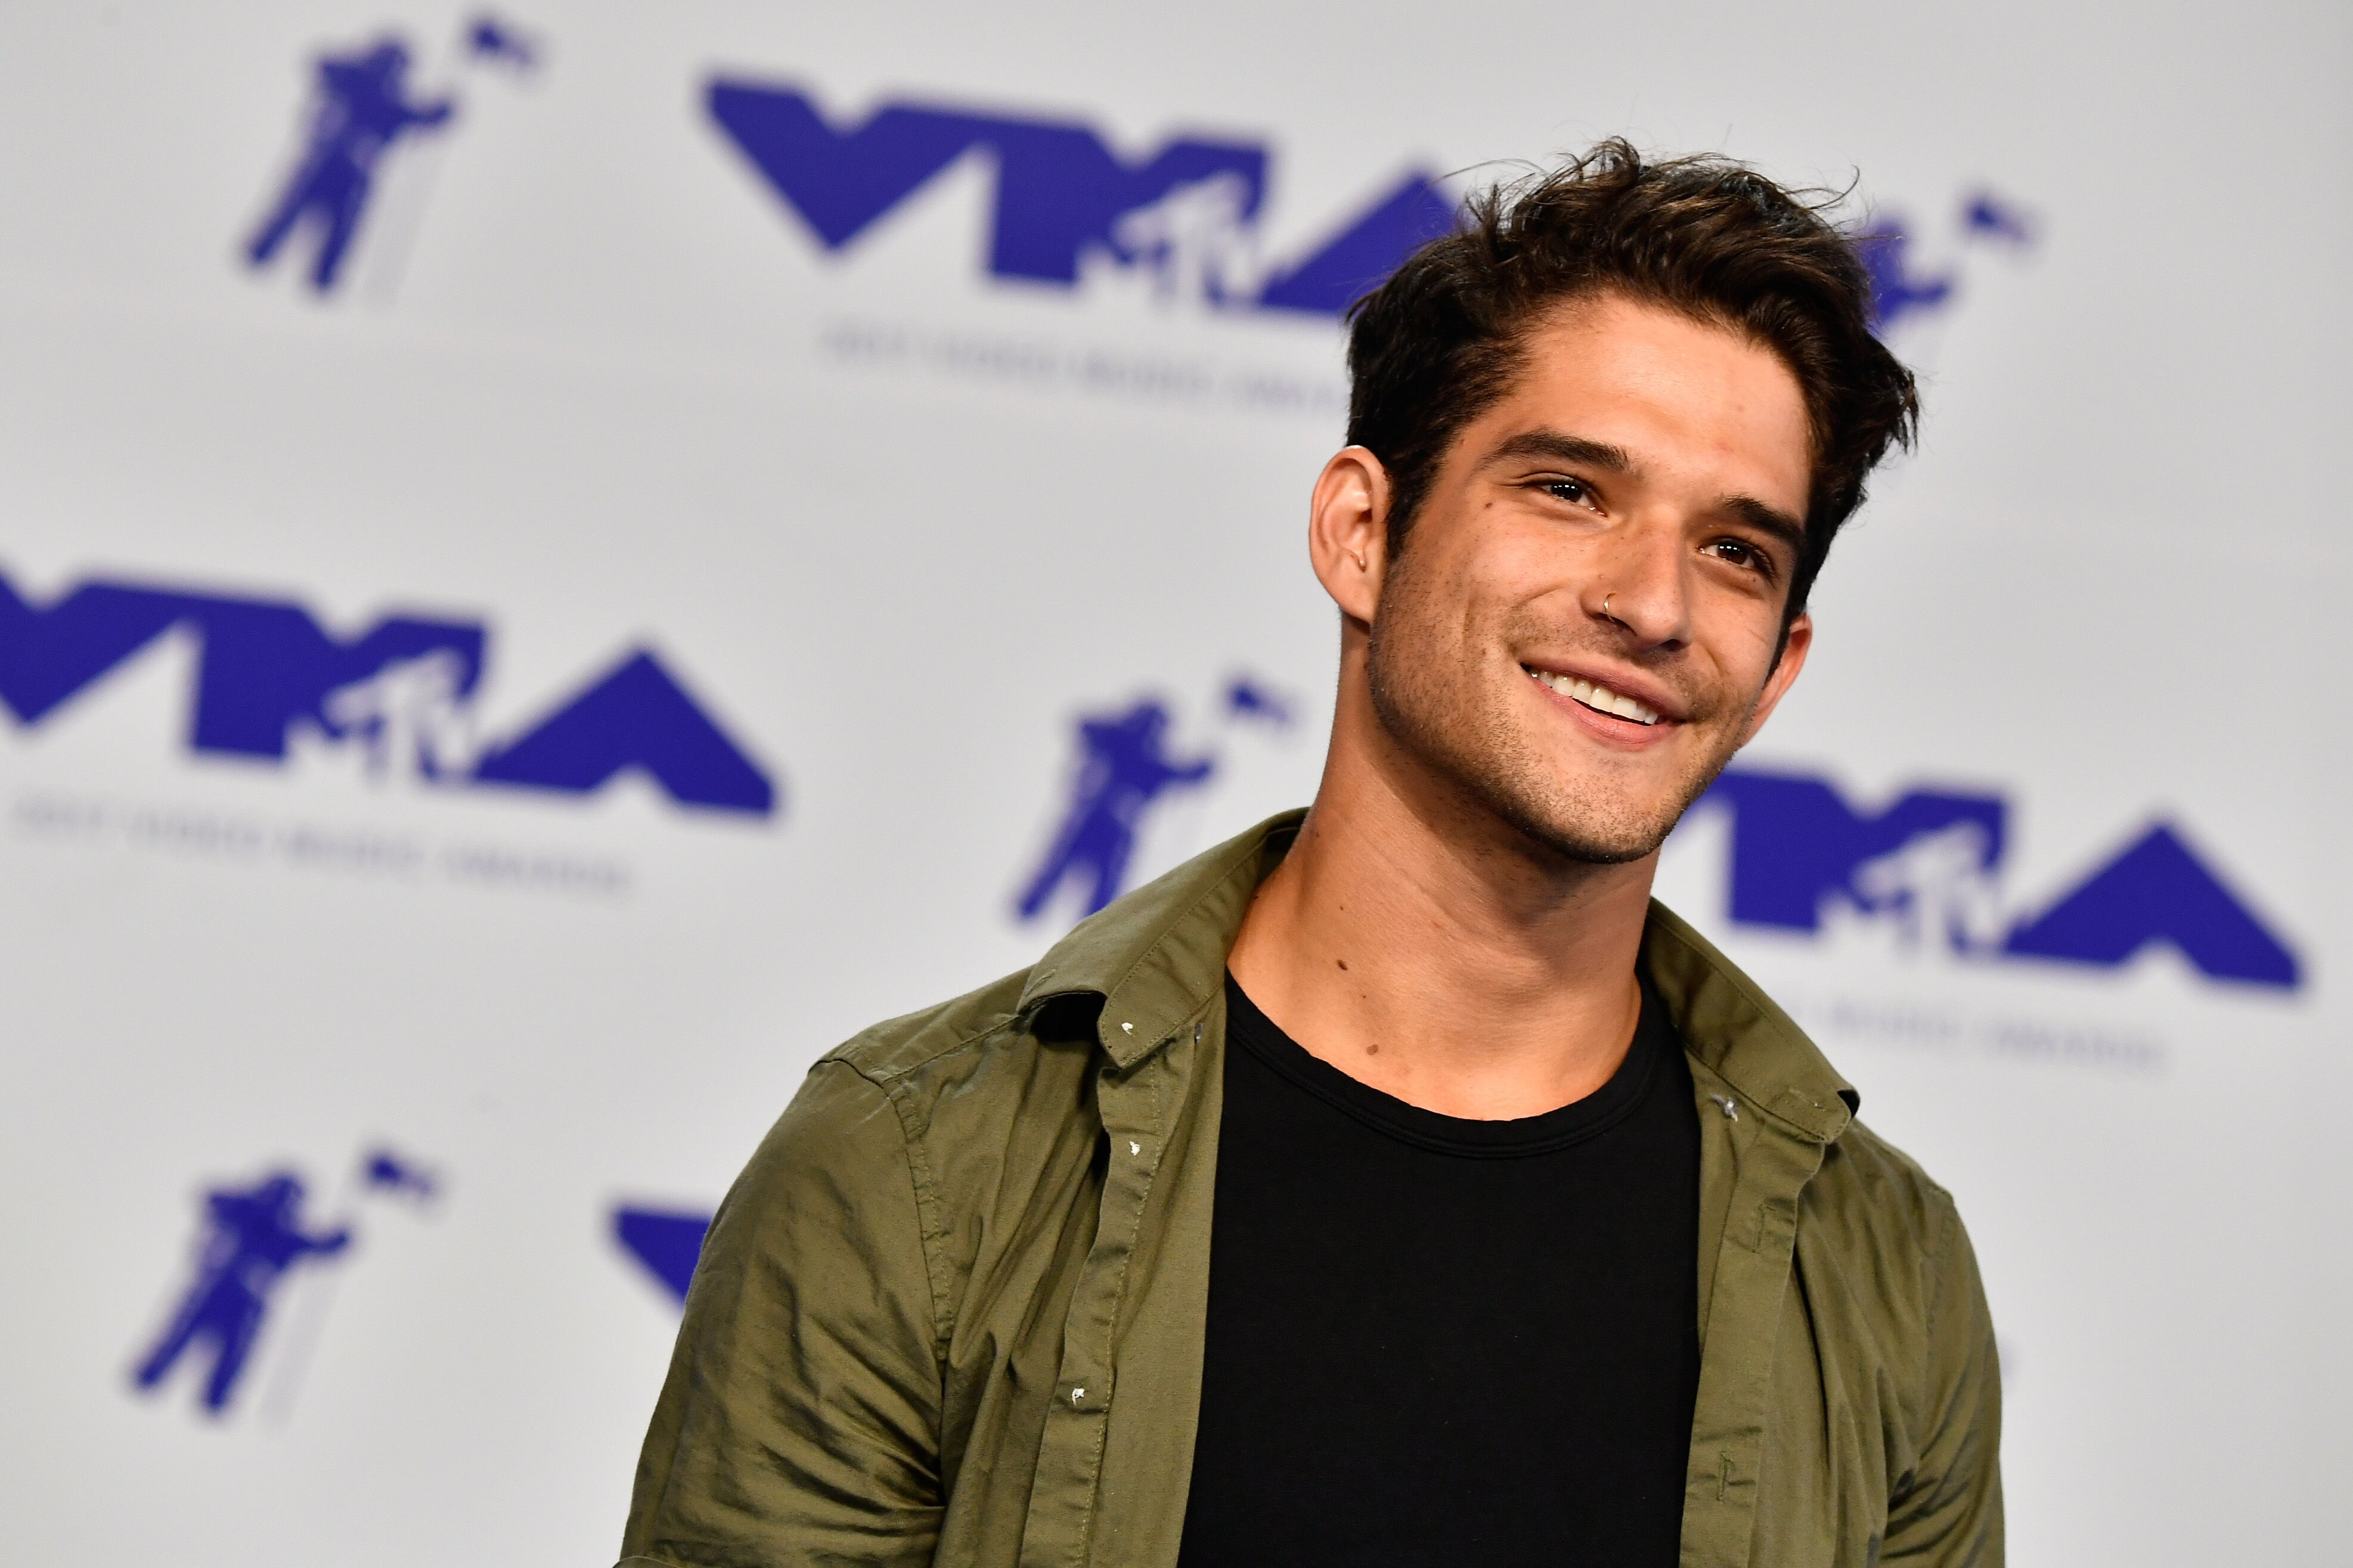 Tyler posey launches new mobile app via escapex gives fans the tyler posey launches new mobile app via escapex gives fans the chance to win meet and greet experience kristyandbryce Image collections